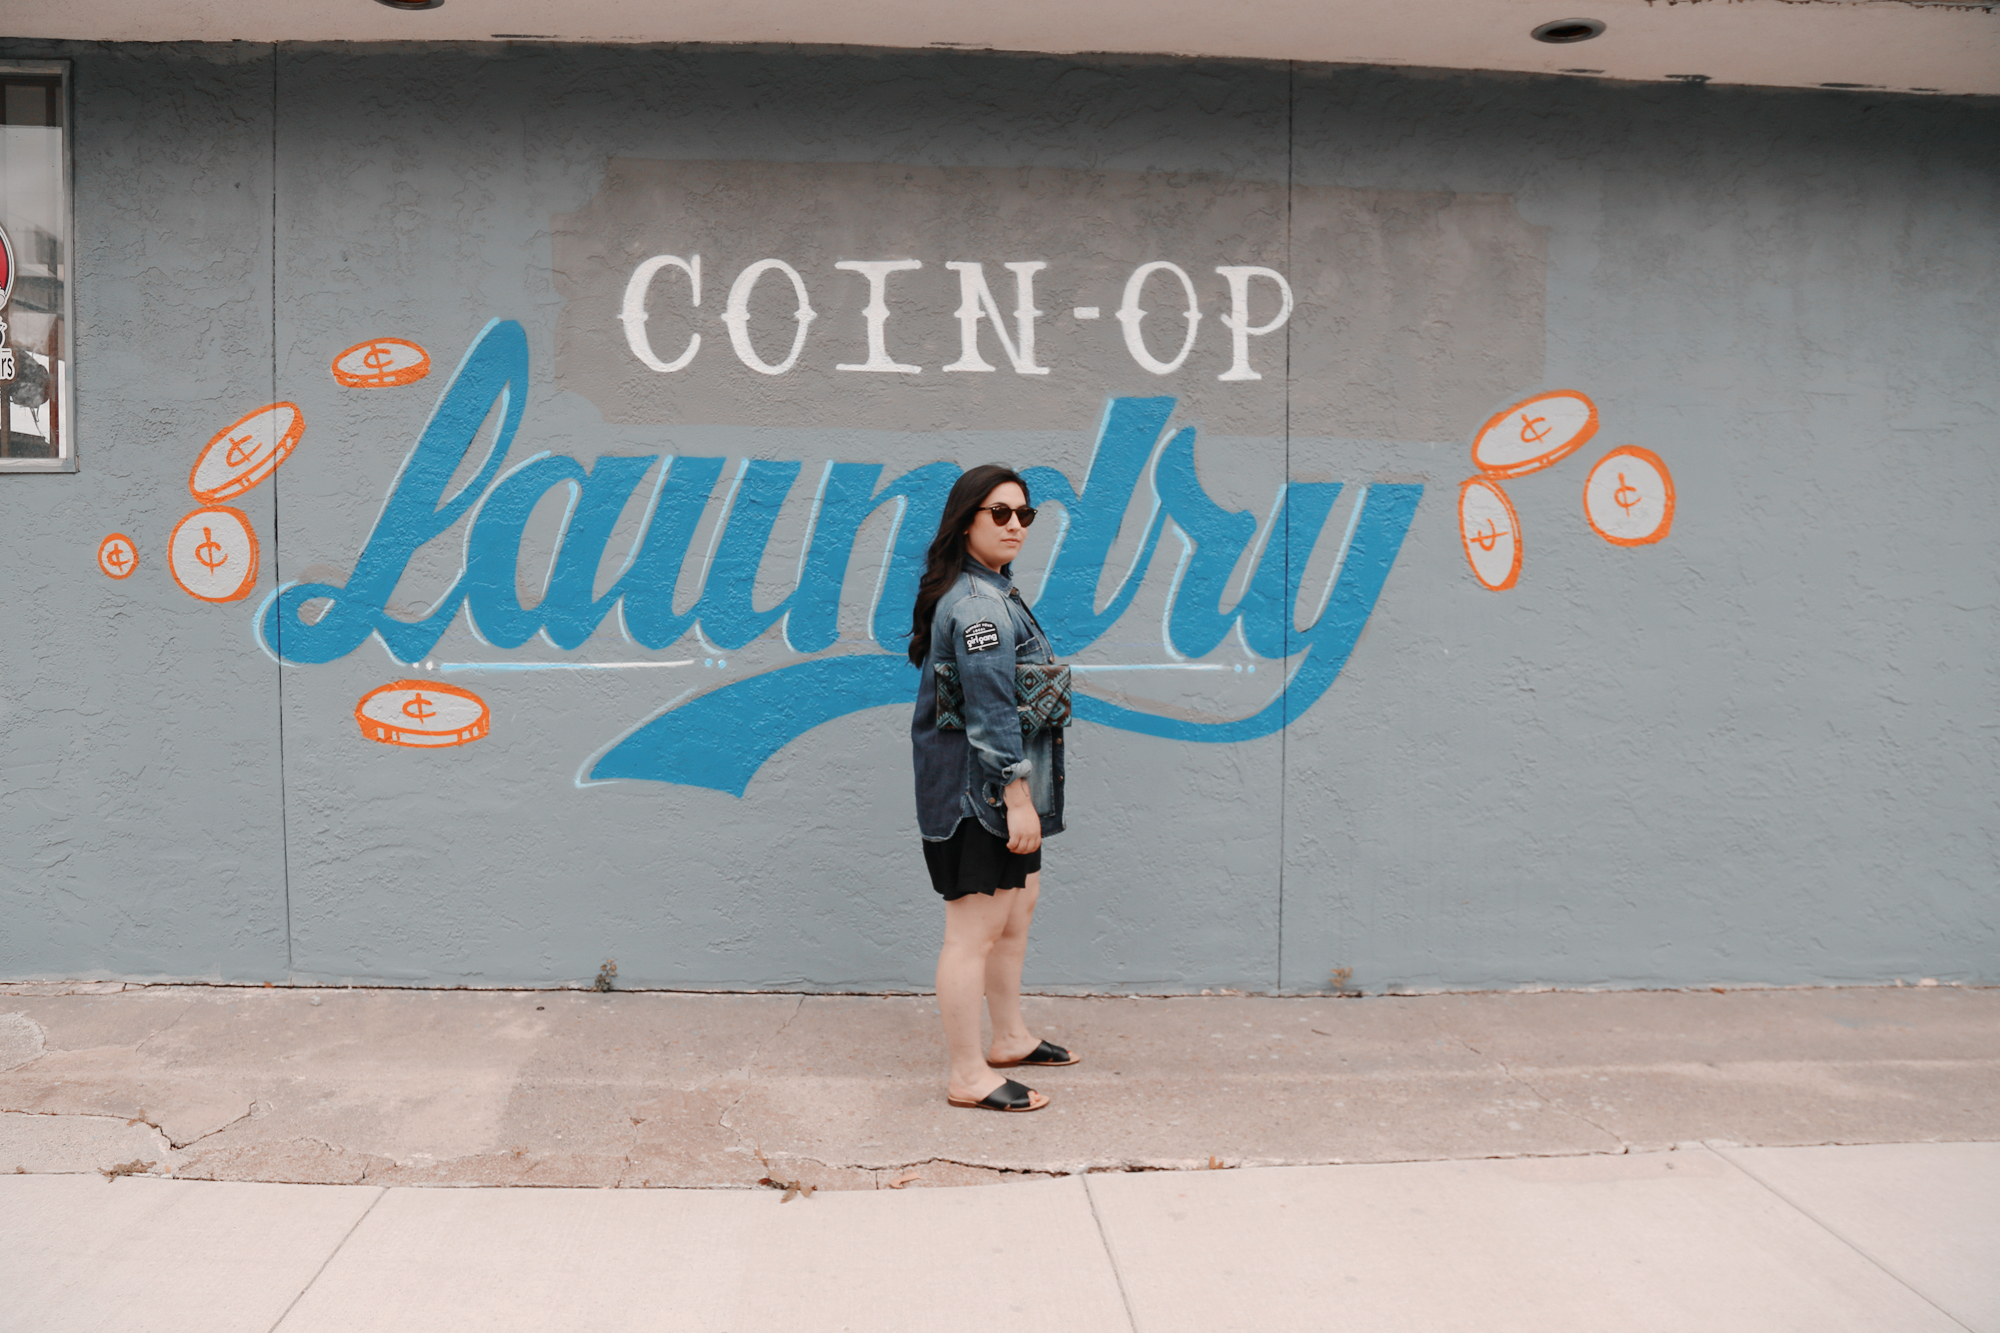 Laundromat Blues - I don't want you to get so clean, babyYou just might wash your life away.